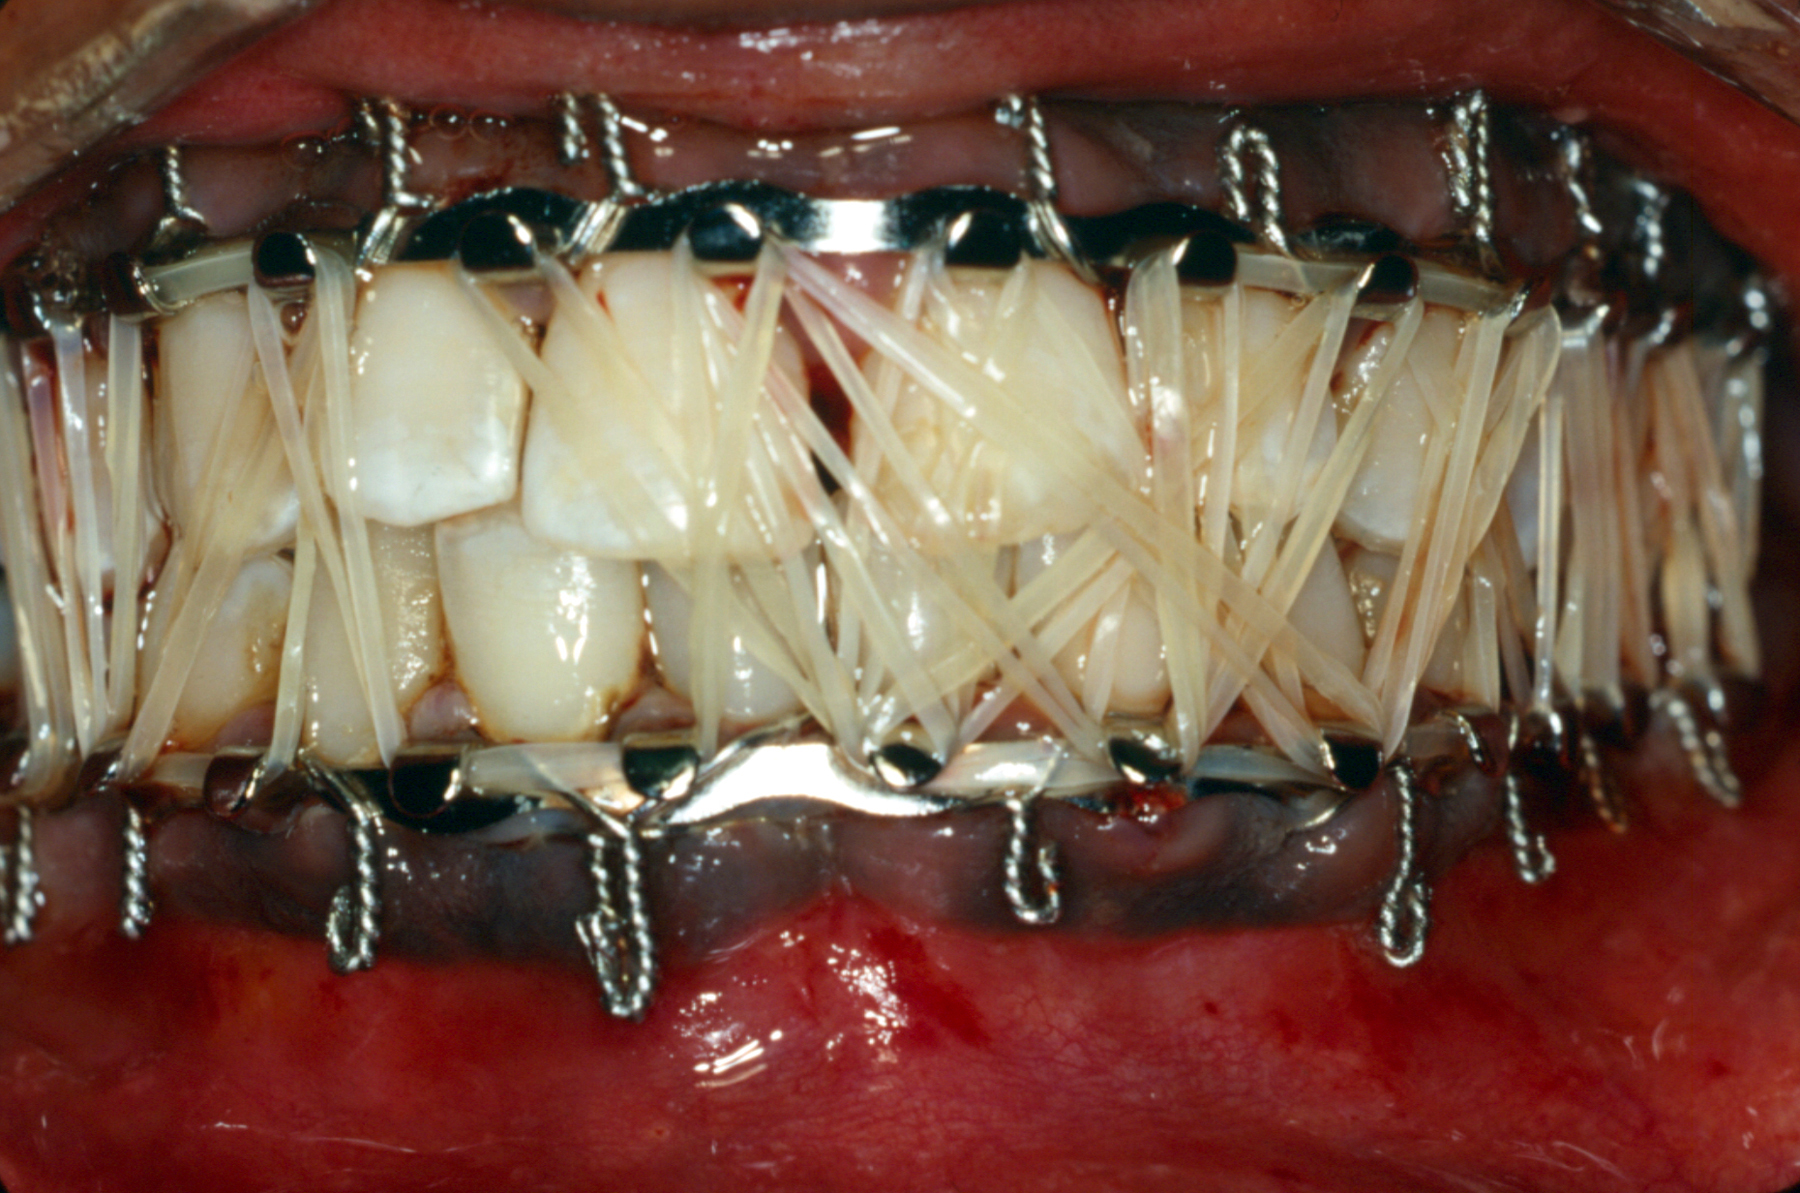 Bilderesultat for closed reduction of mandibular fracture